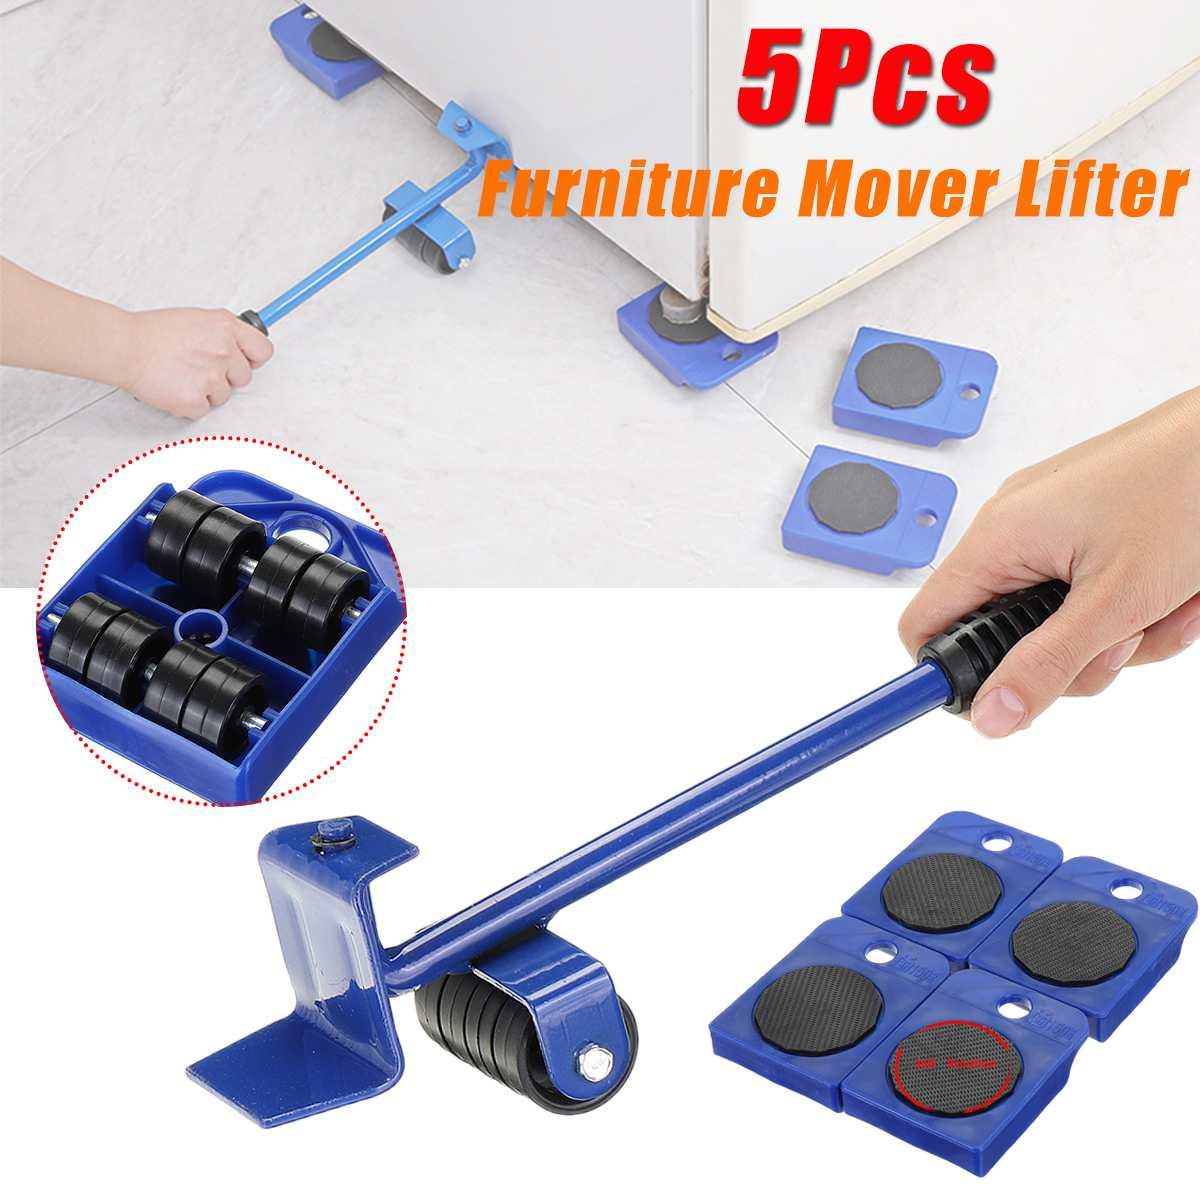 5Pcs Furniture Lifter Mover Heavy Hand Tool Set Furniture Transport Moving Tool Mover Roller + Wheel Bar